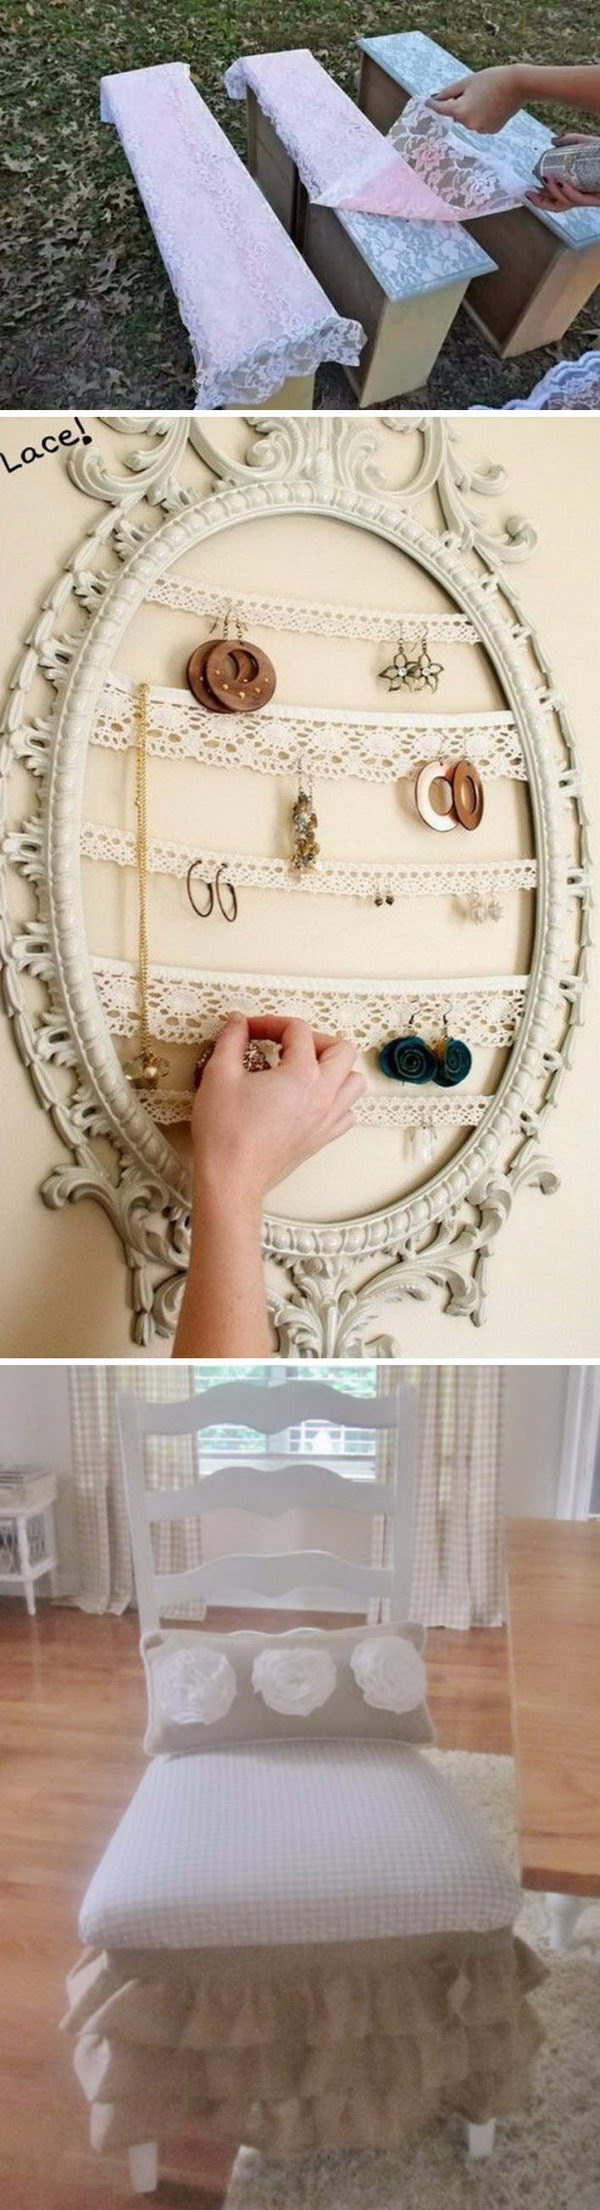 Fantistic DIY Shabby Chic Furniture Ideas and Tutorials.